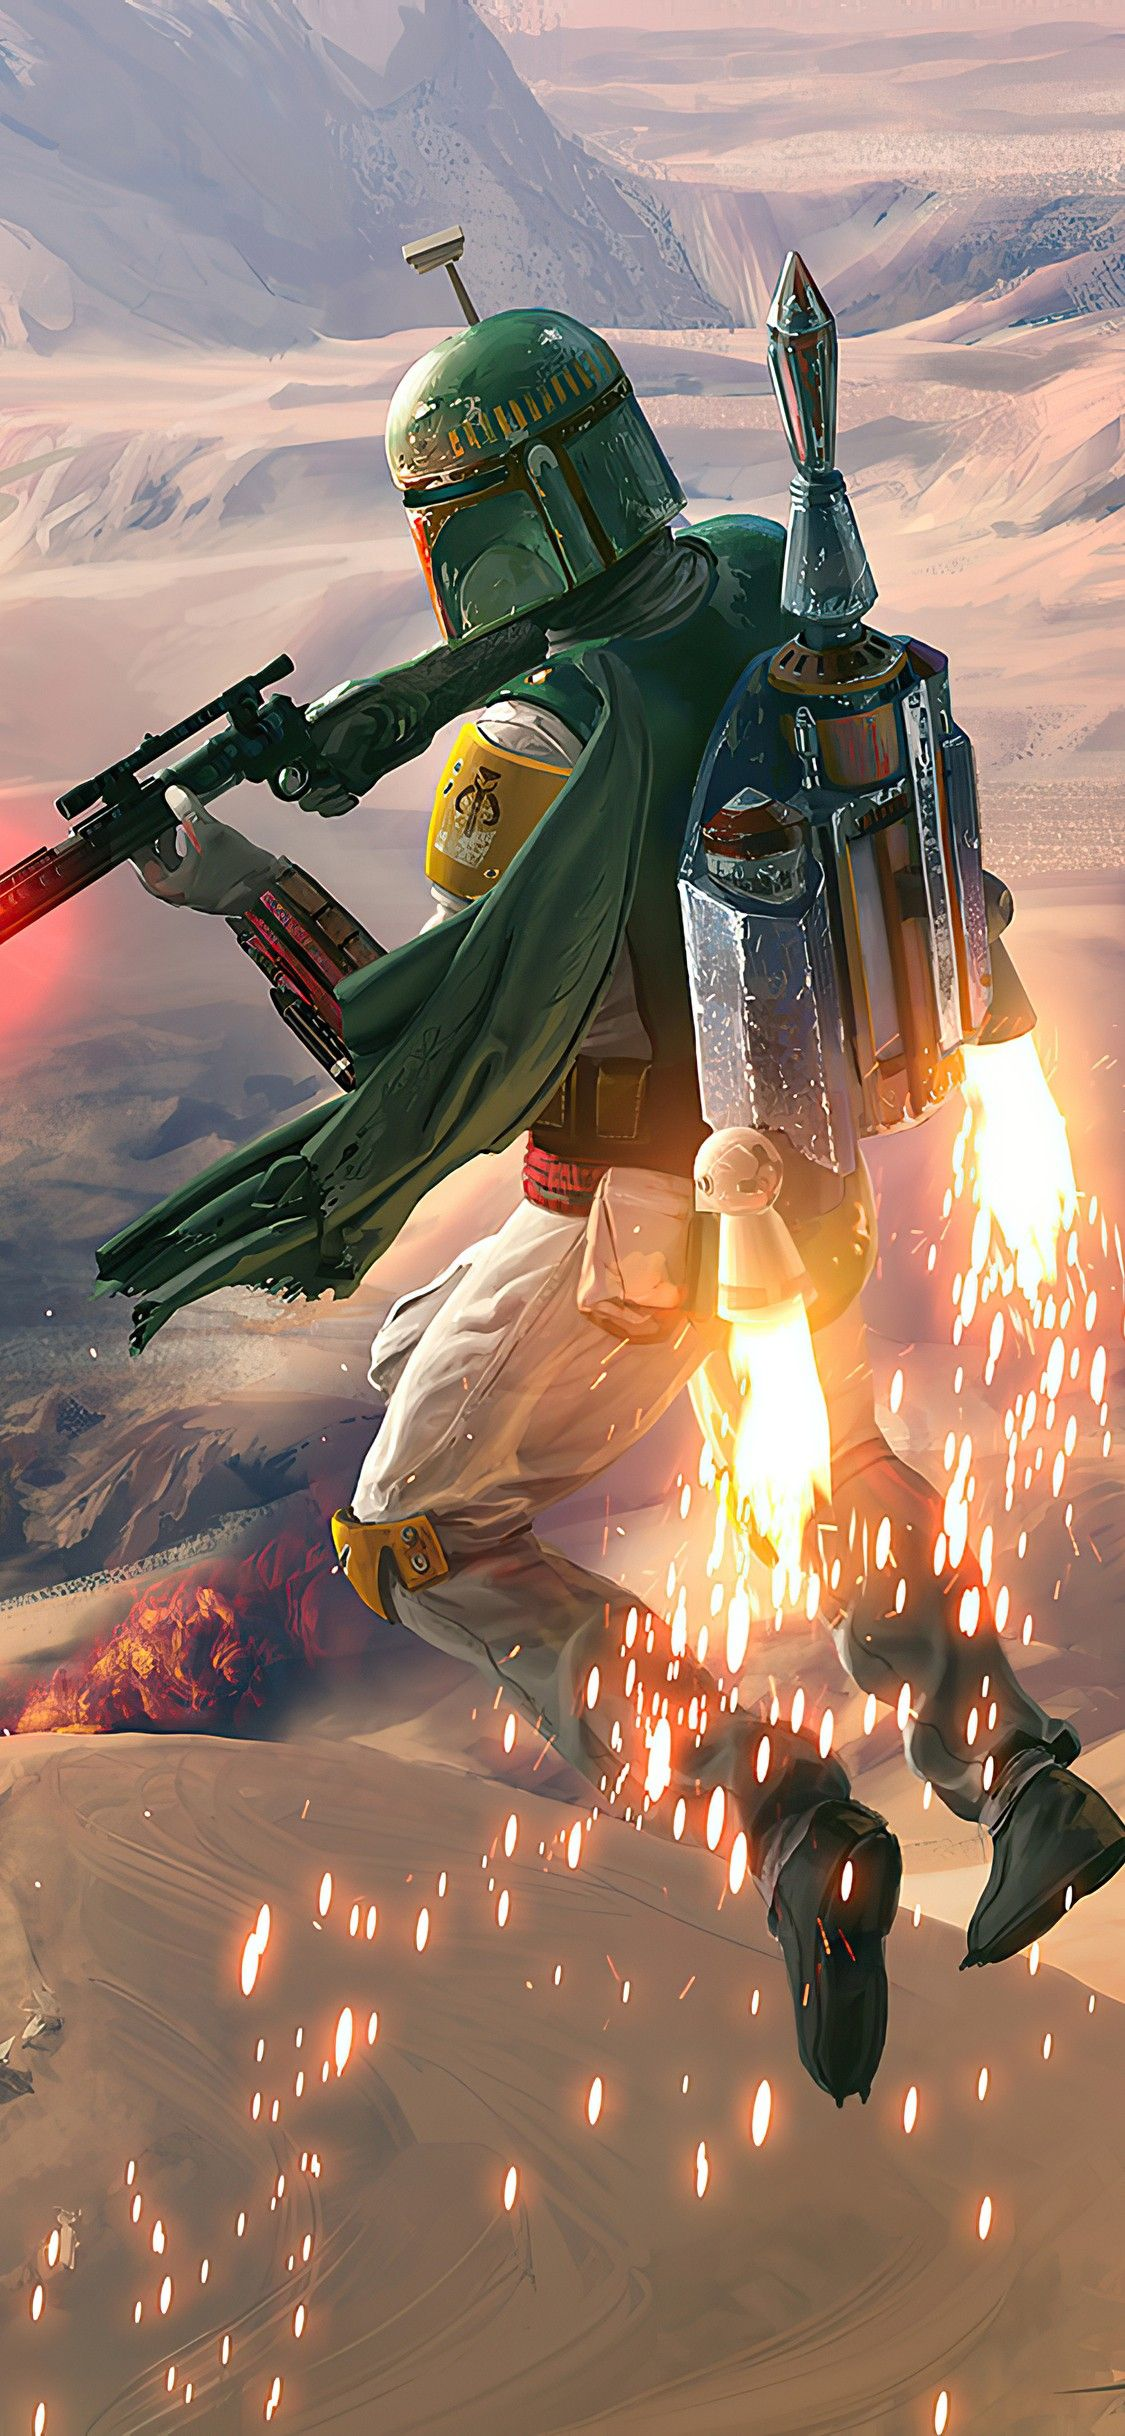 Boba Fett Wallpaper For Mobile Phone Tablet Desktop Computer And Other Devices Hd And 4k Wallpape In 2021 Boba Fett Wallpaper Star Wars Background Star Wars Pictures